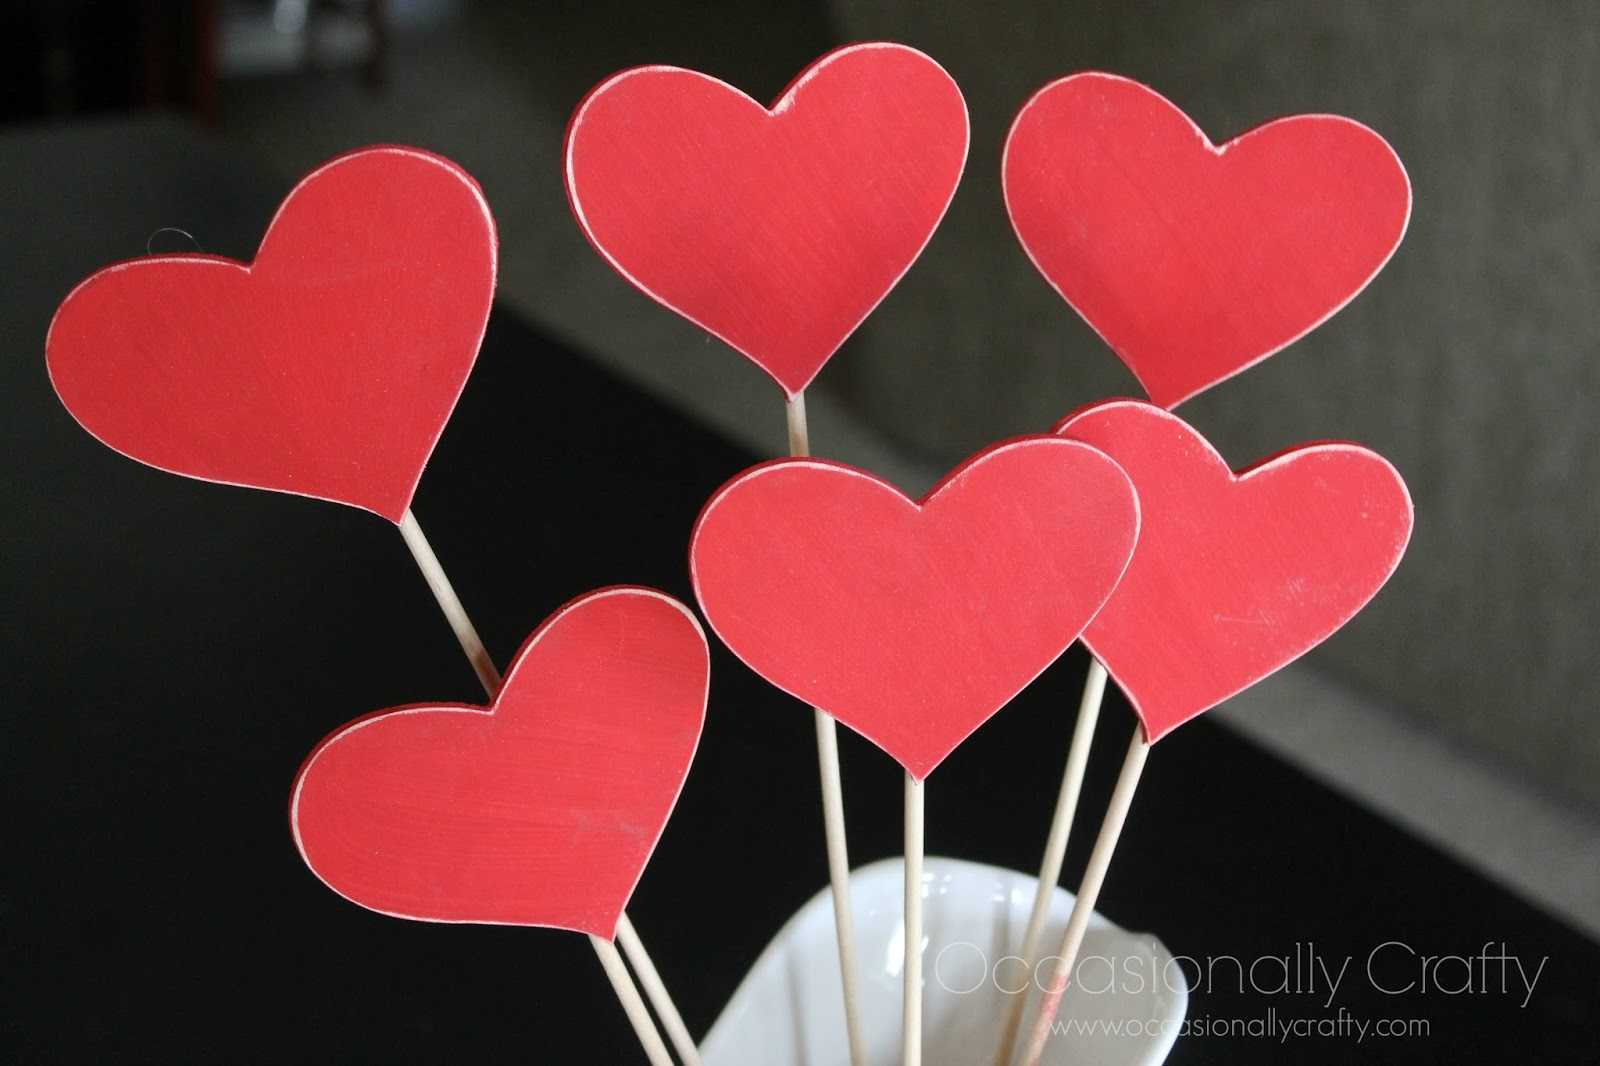 i put mine in a white pitcher vase filled with dry beans so the skewers will stay in place there you go a quick and easy valentines day decoration - Valentines Day Decor